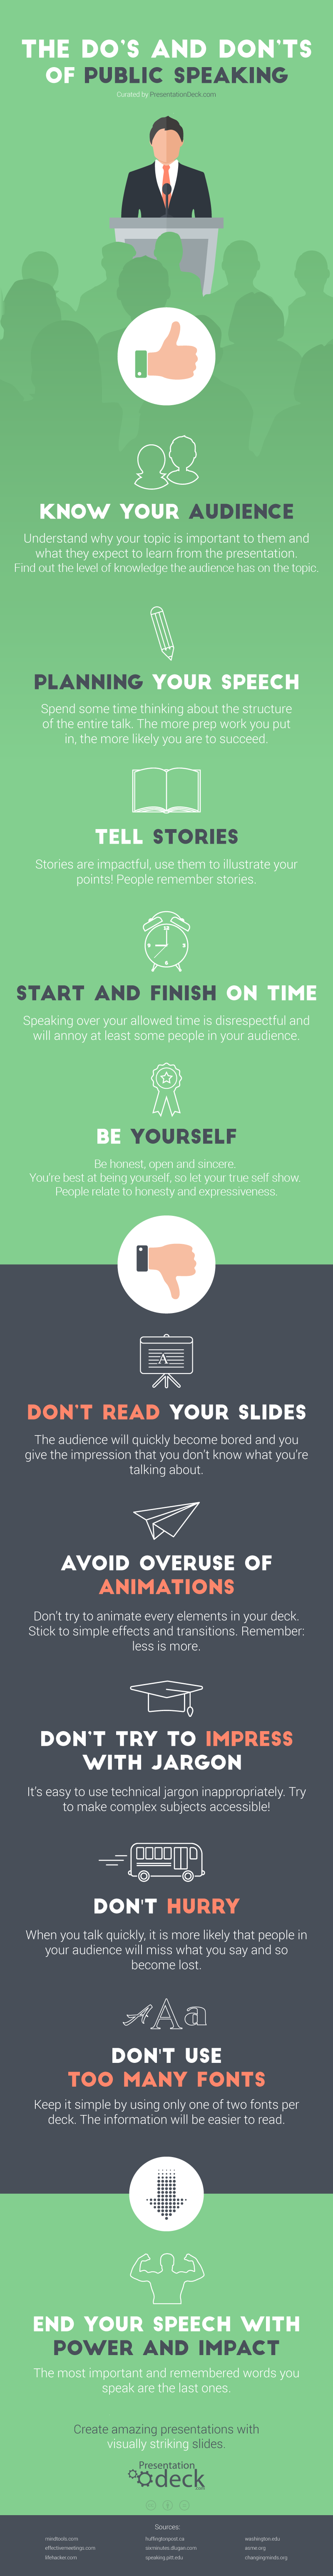 The do's and don'ts of public speaking #infographic